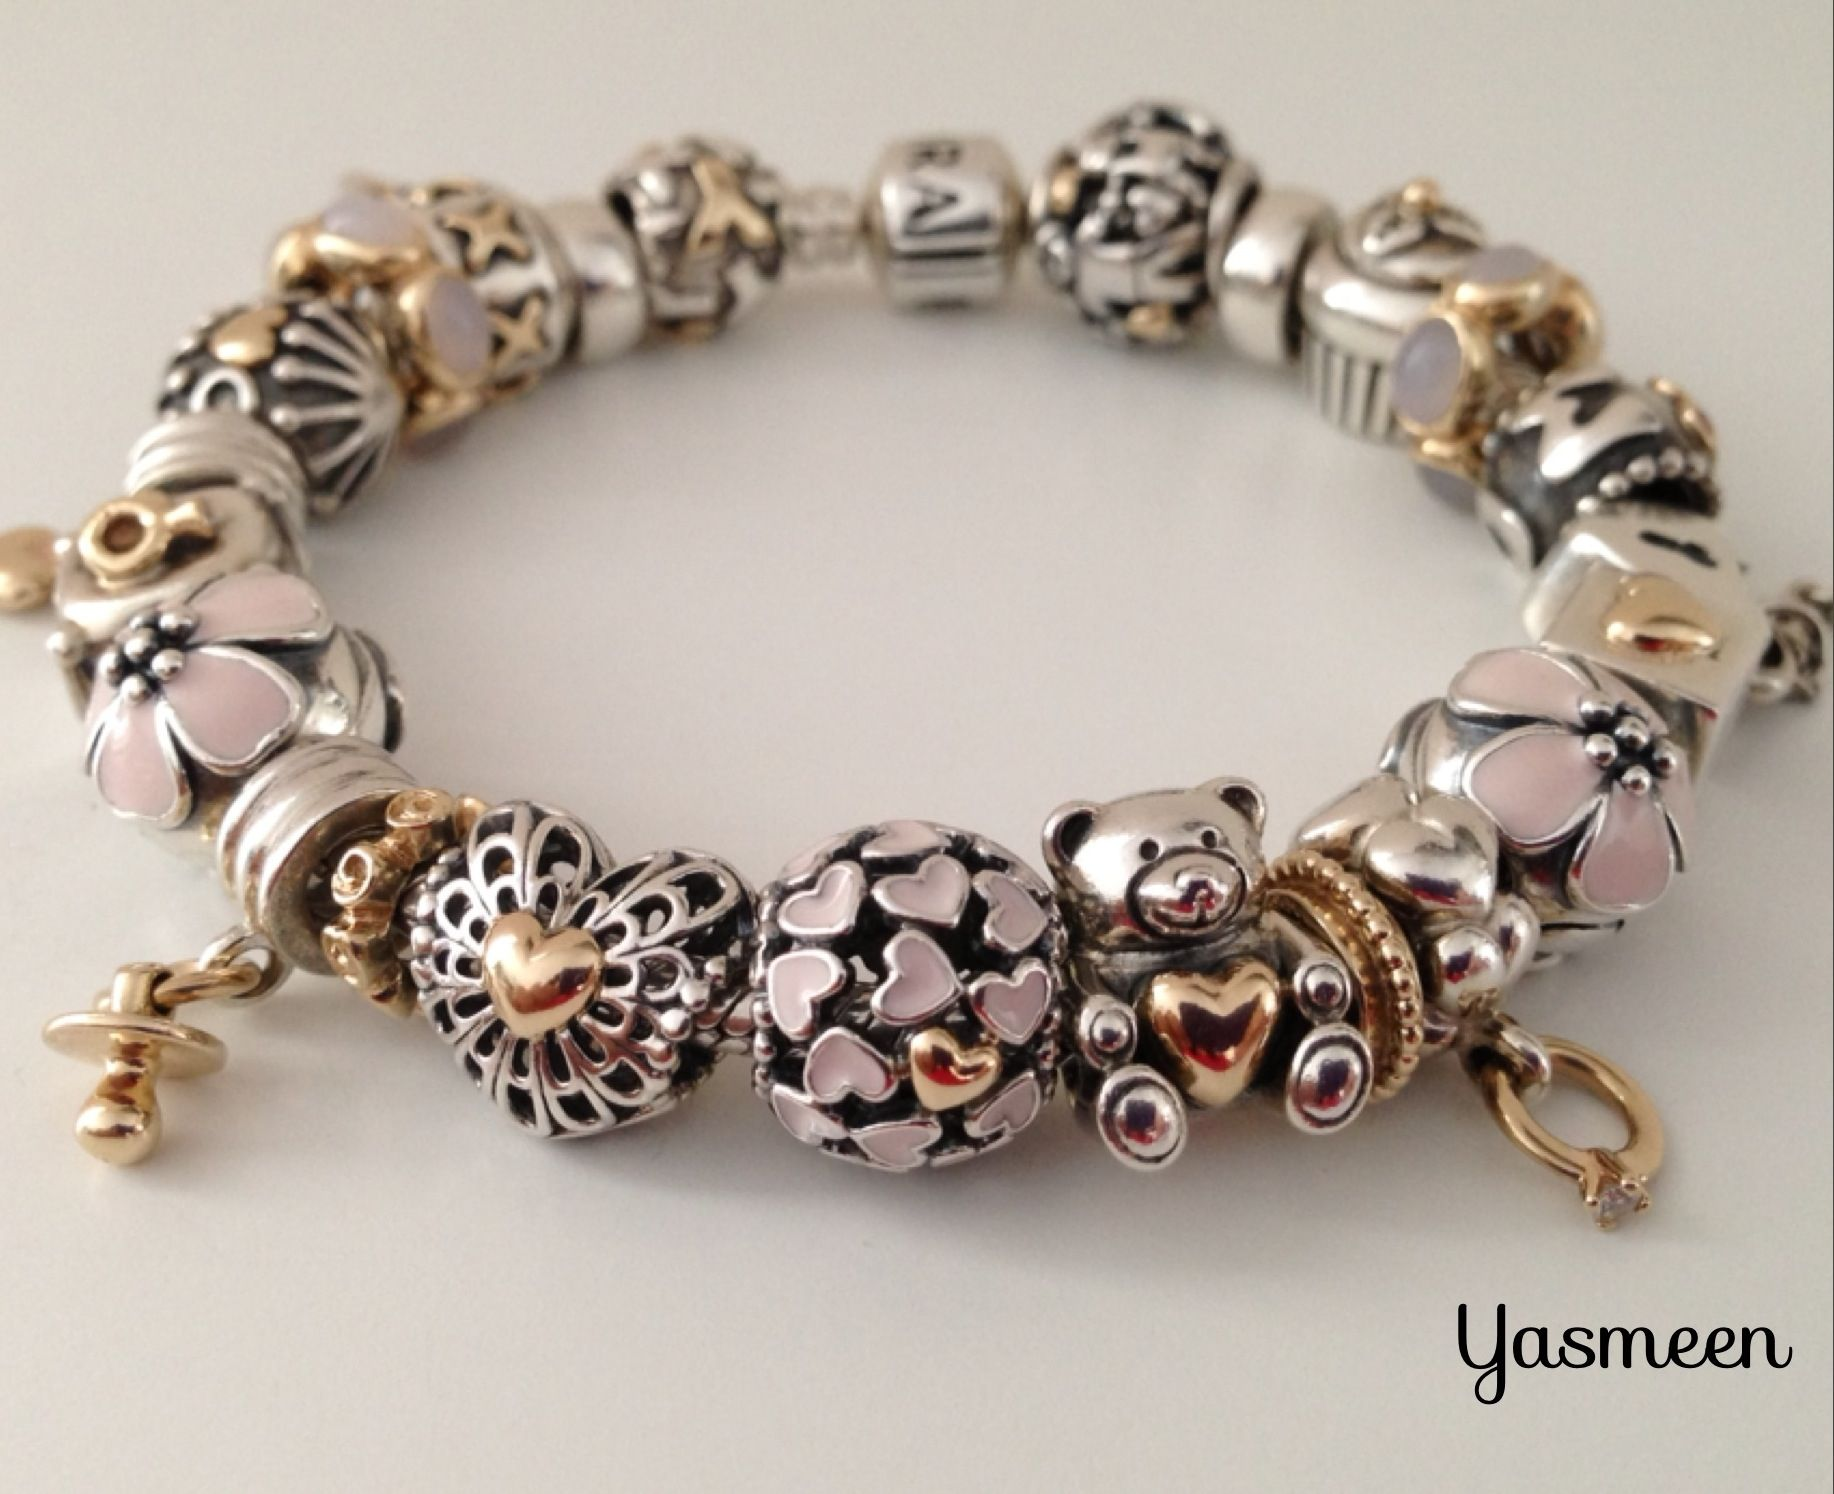 The Look Of This Two Tone Bracelet Along With Soft Pink Colors Makes Me Weak Pandoves Crabtree